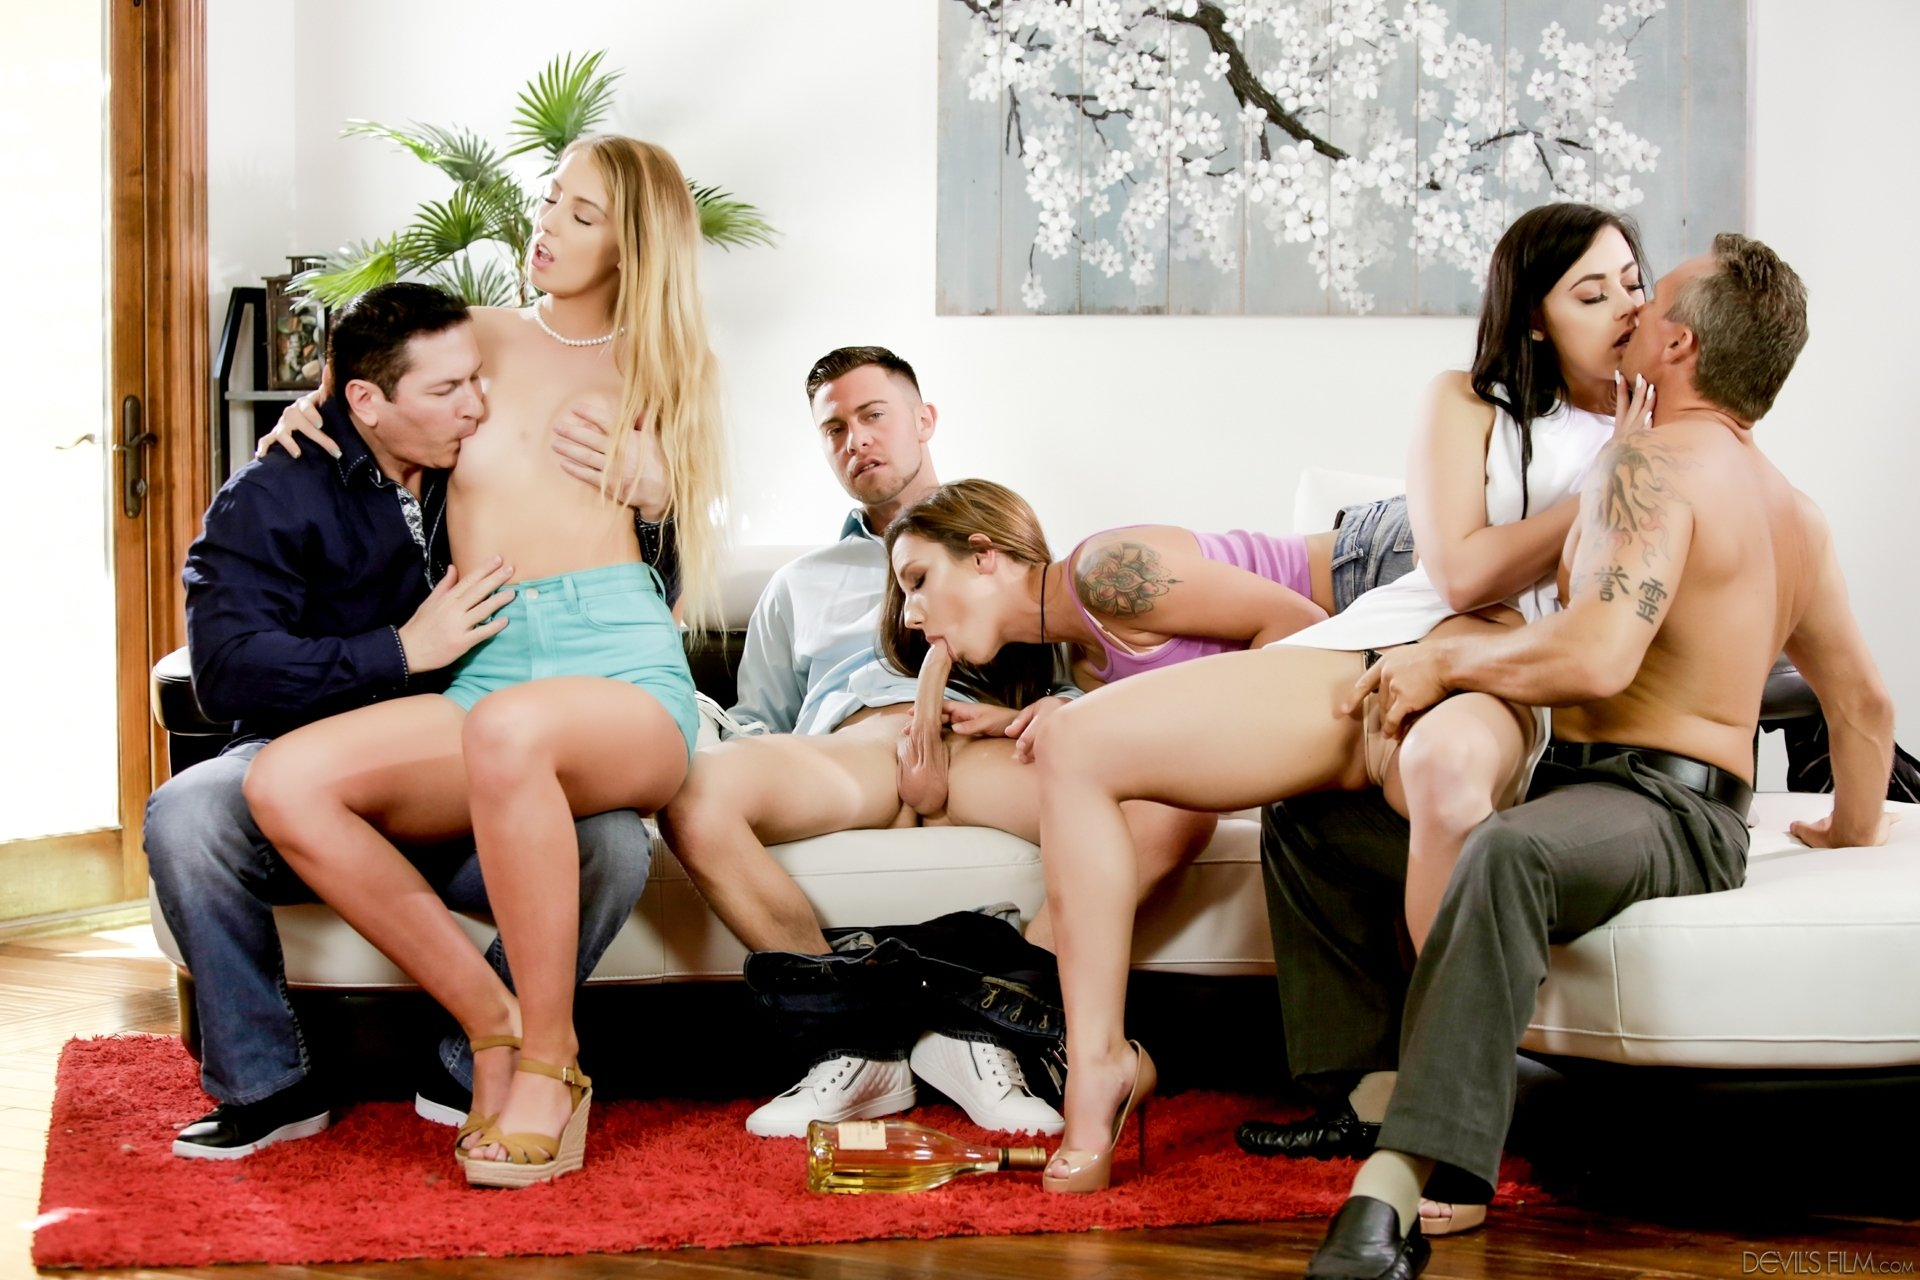 Hd group sex tube #1